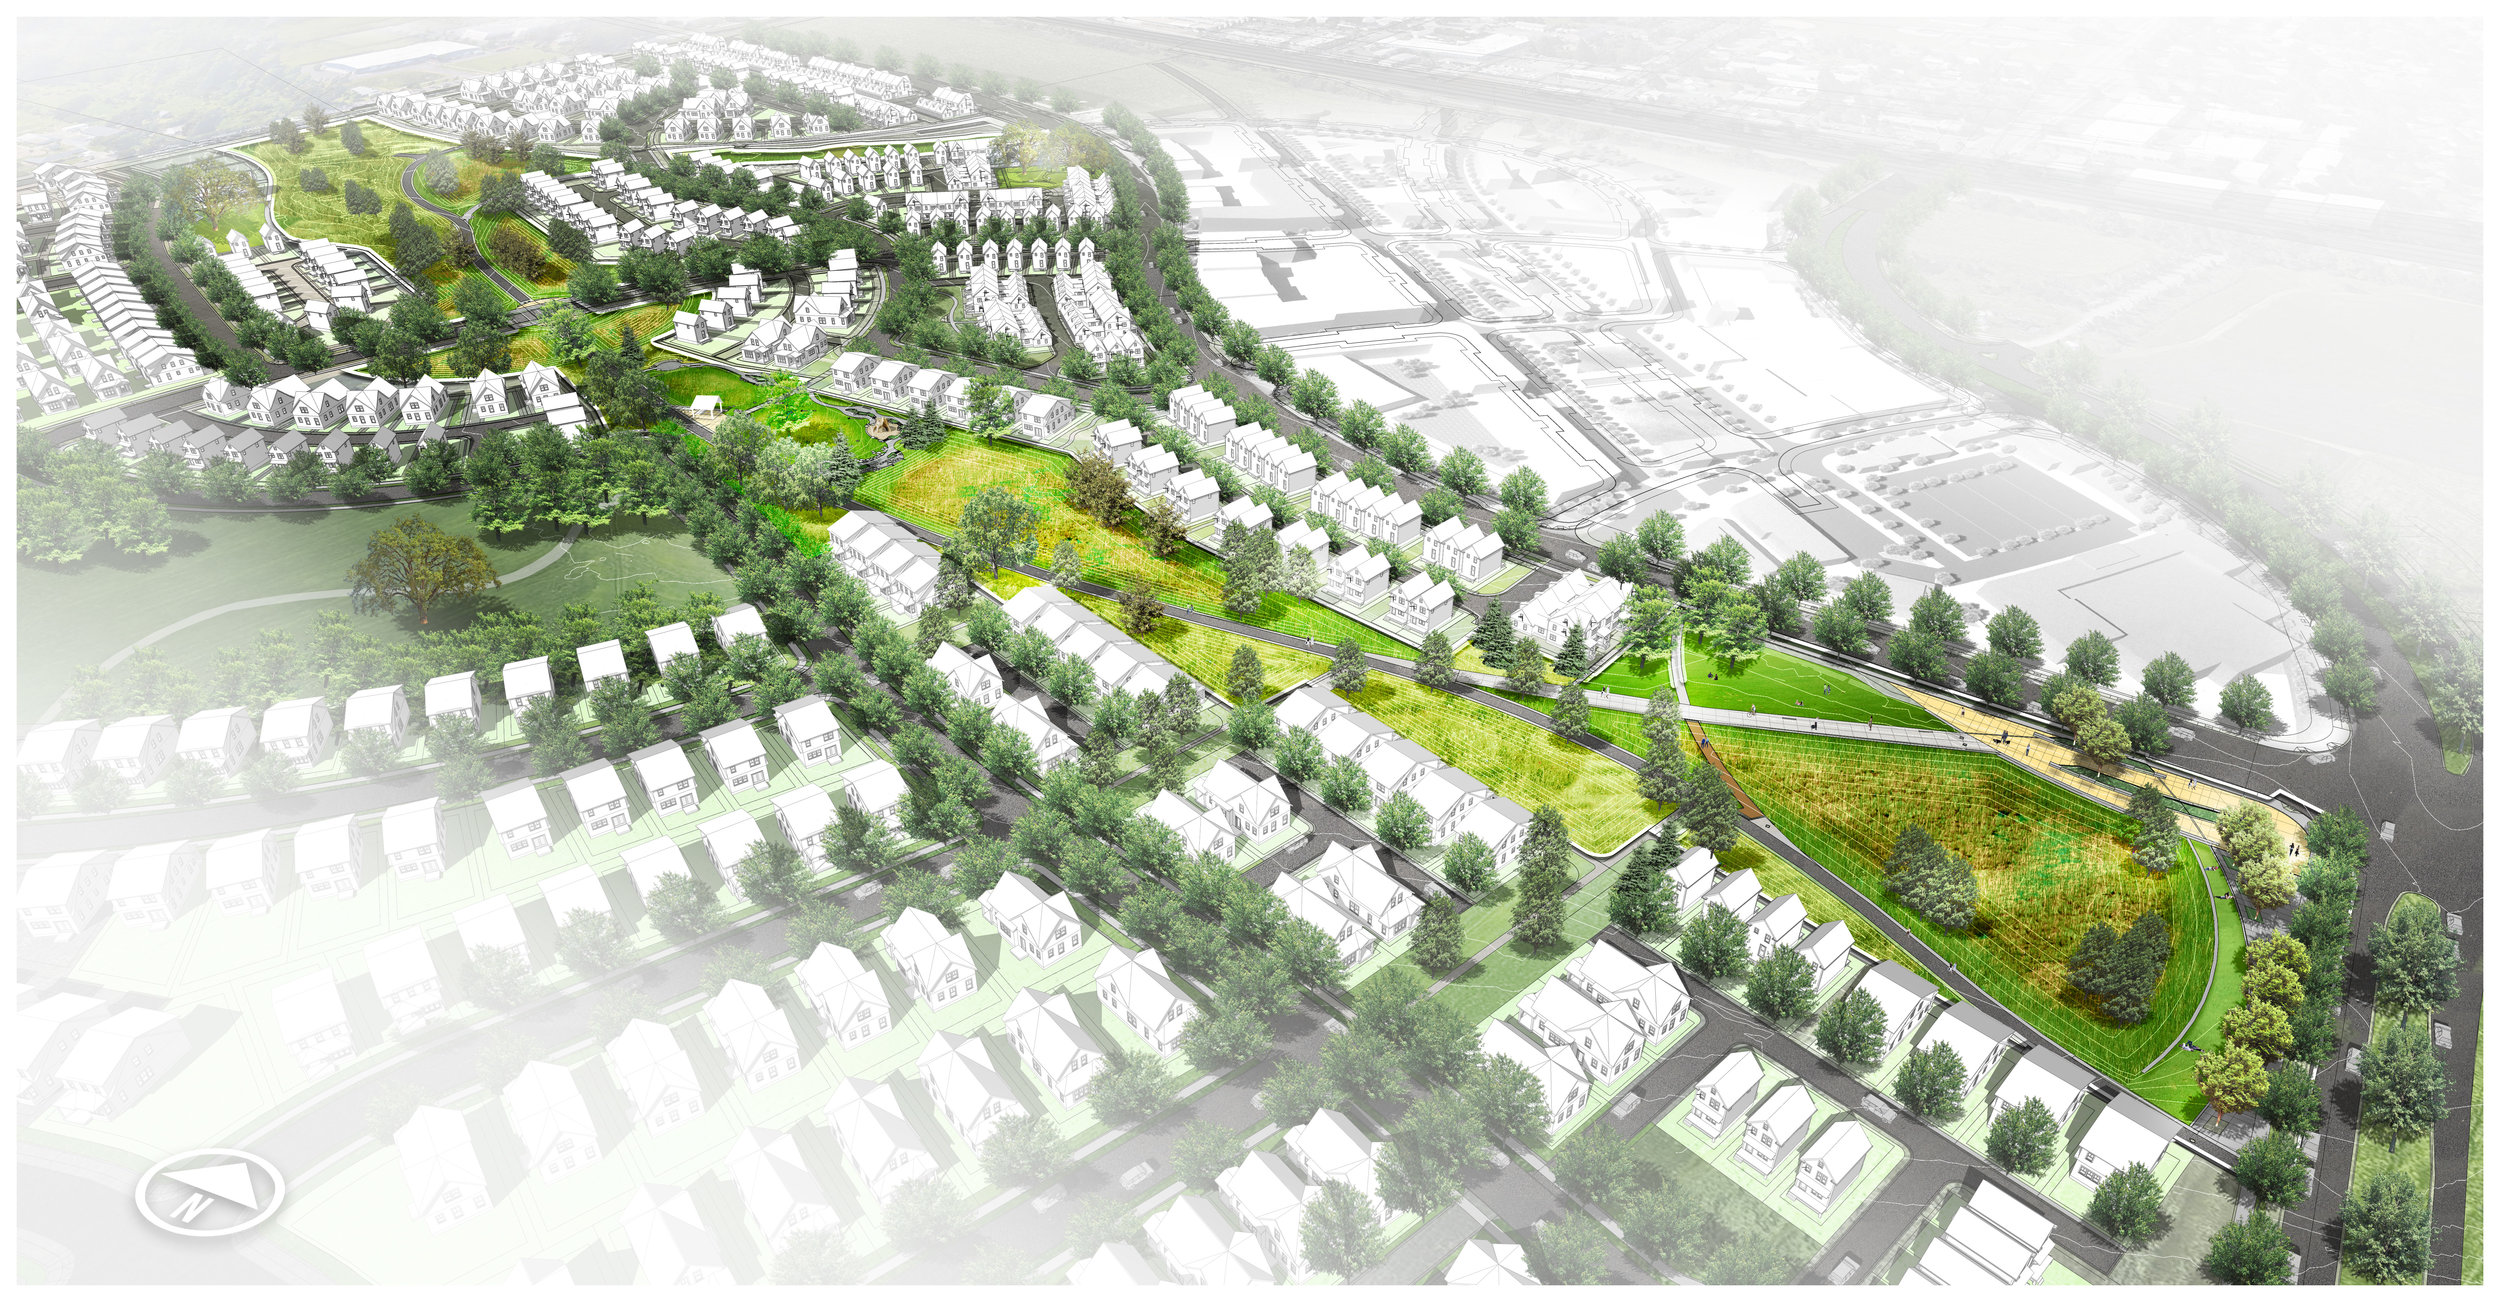 illustration of prospective suburb with green space knitting it together